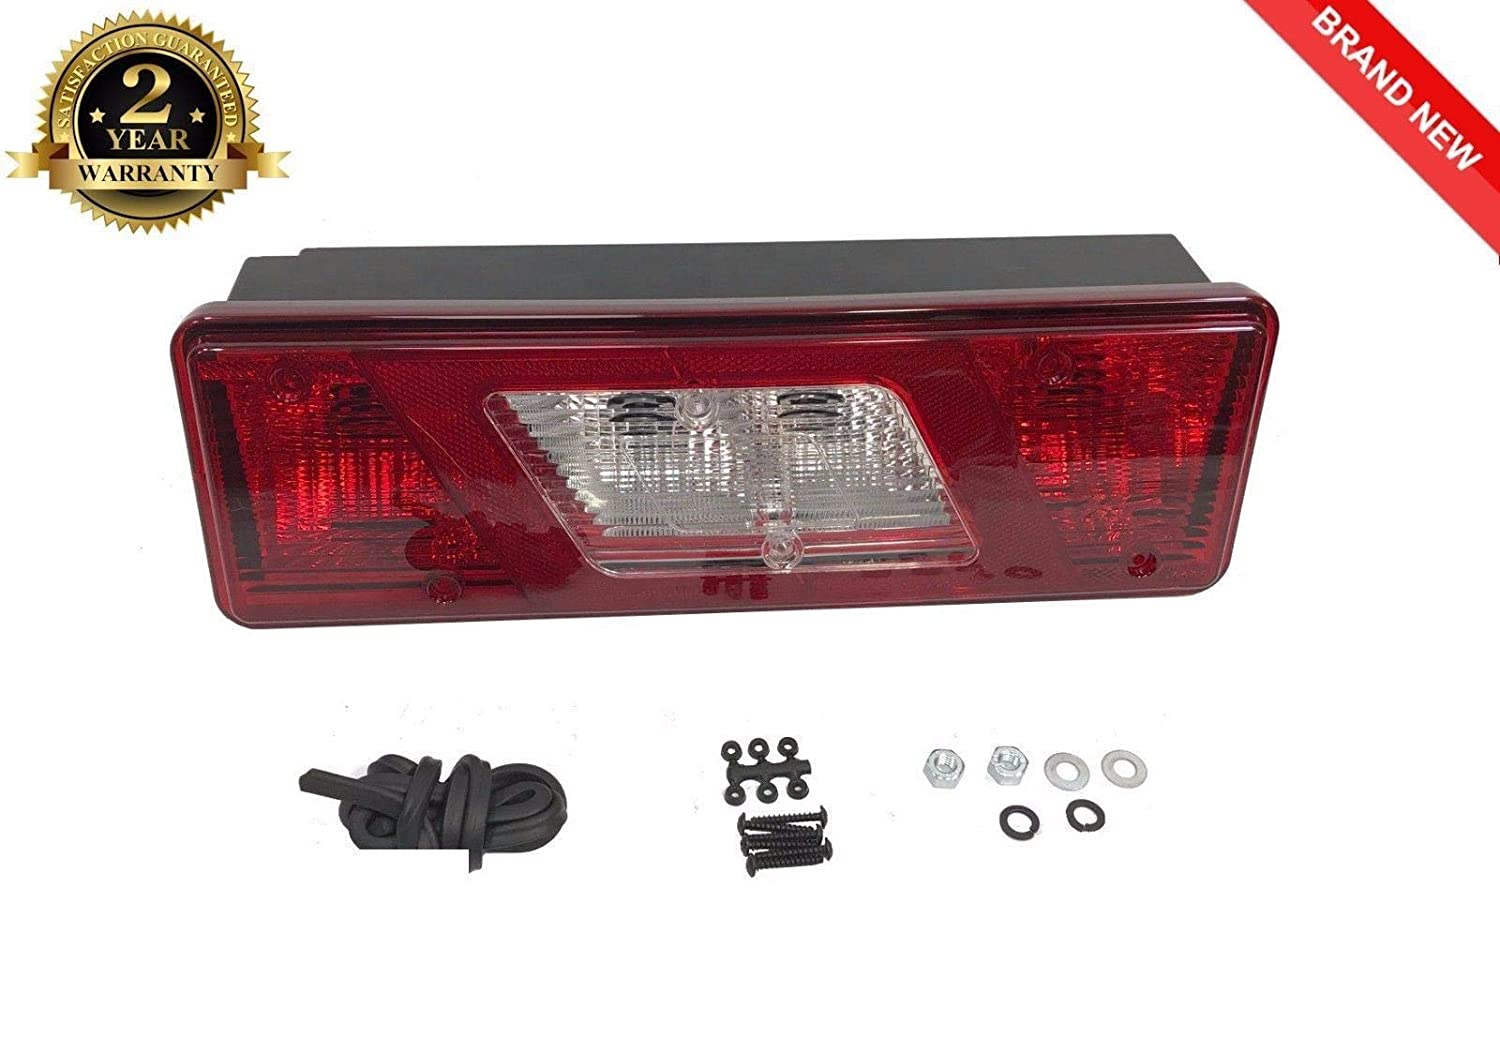 Transit Parts Transit MK8 2014 On Left Side Tipper Chassis Cab Rear Tail Light Lamp Lens